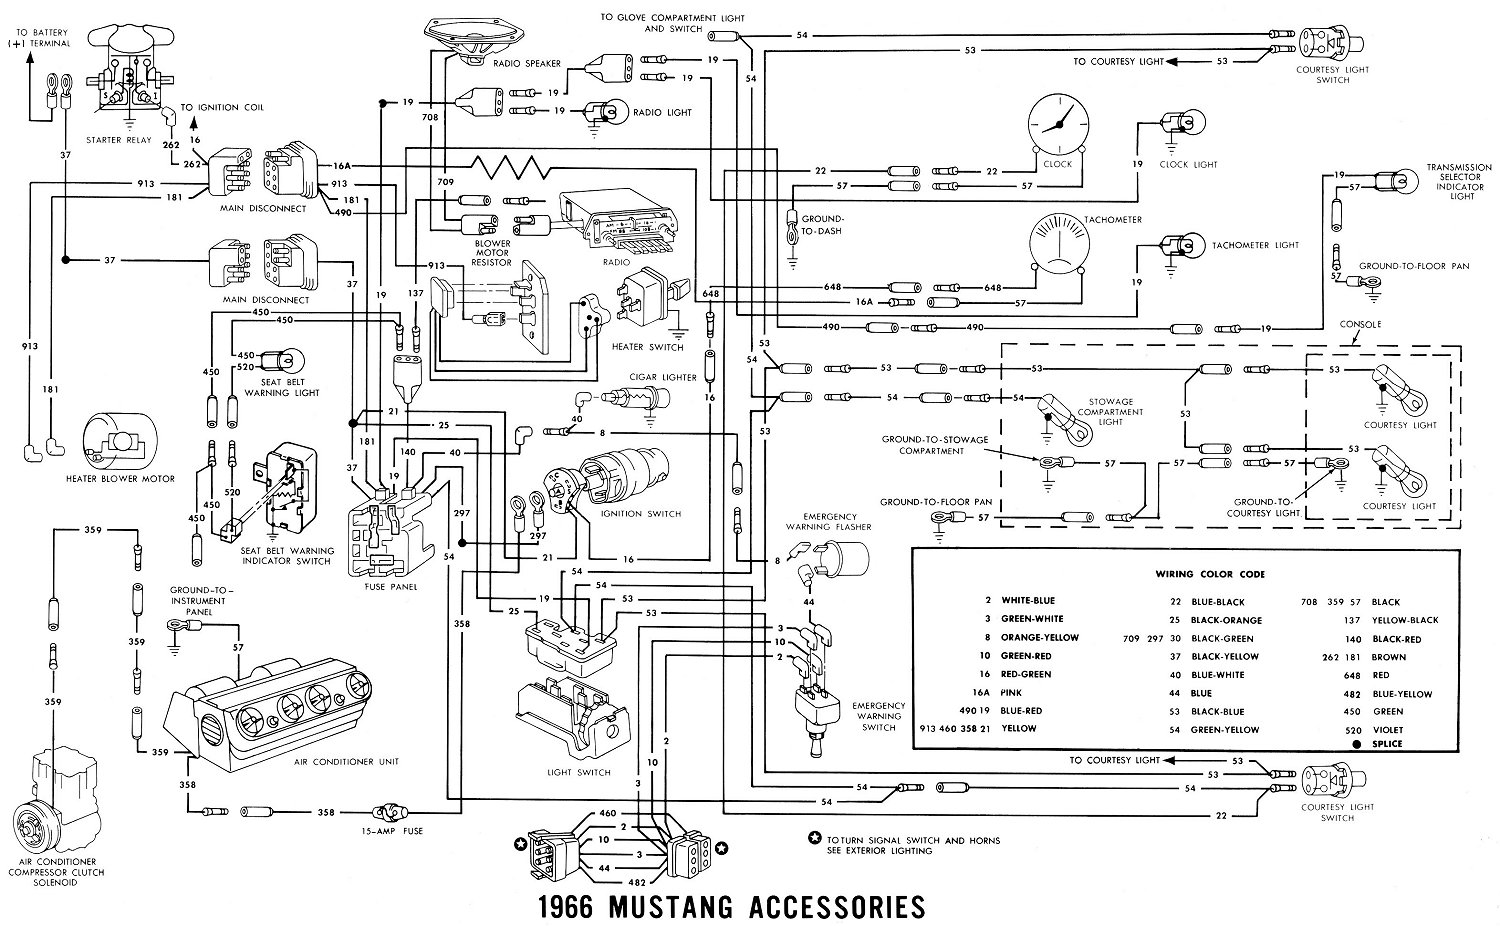 66acces1 66 mustang wiring diagram online 65 ford mustang wiring diagram 1965 ford mustang wiring diagrams at crackthecode.co